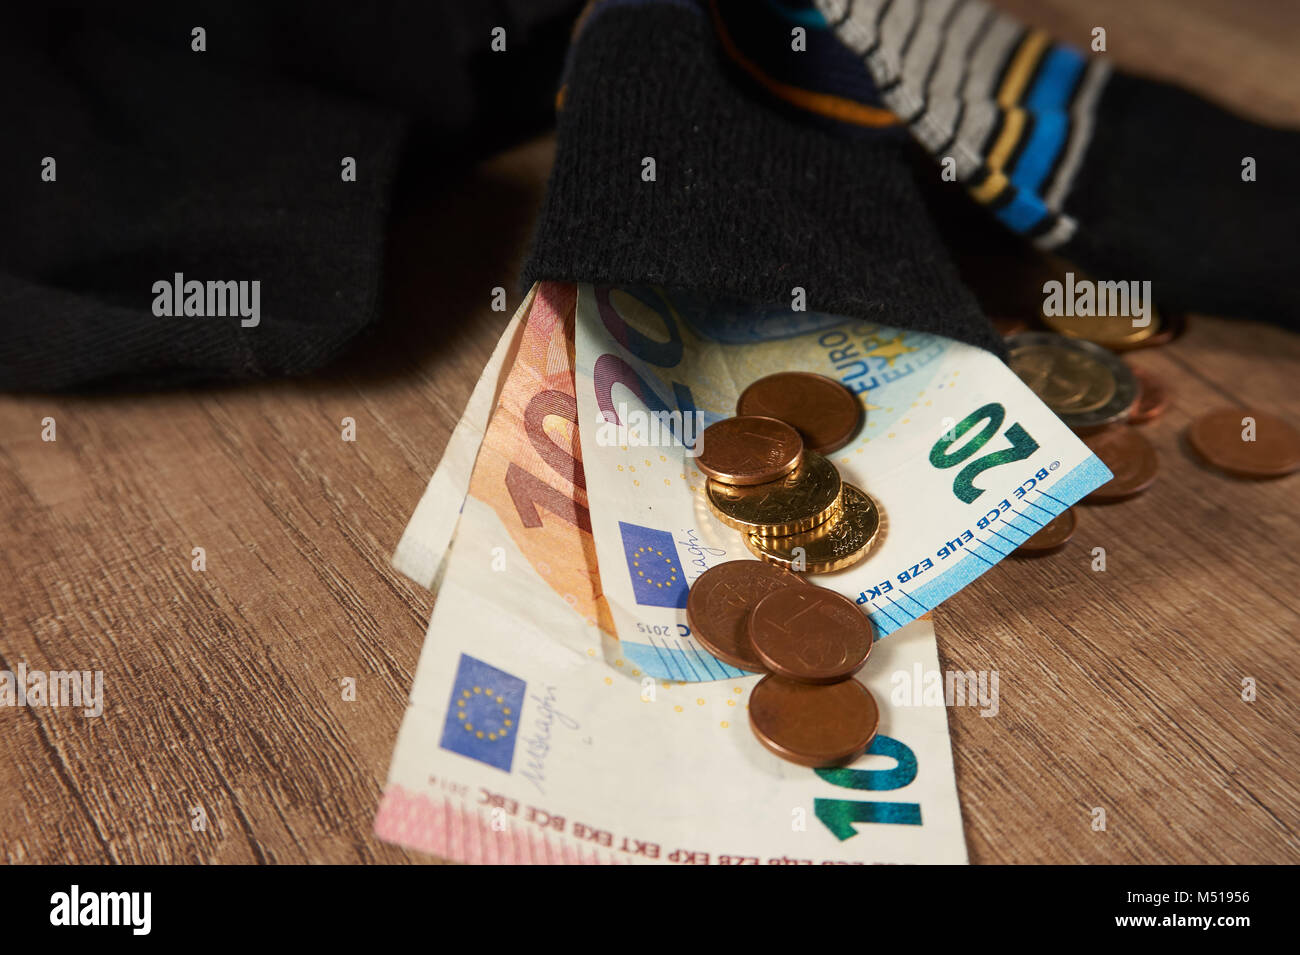 Hiding money in socks is an insecure investment - Stock Image